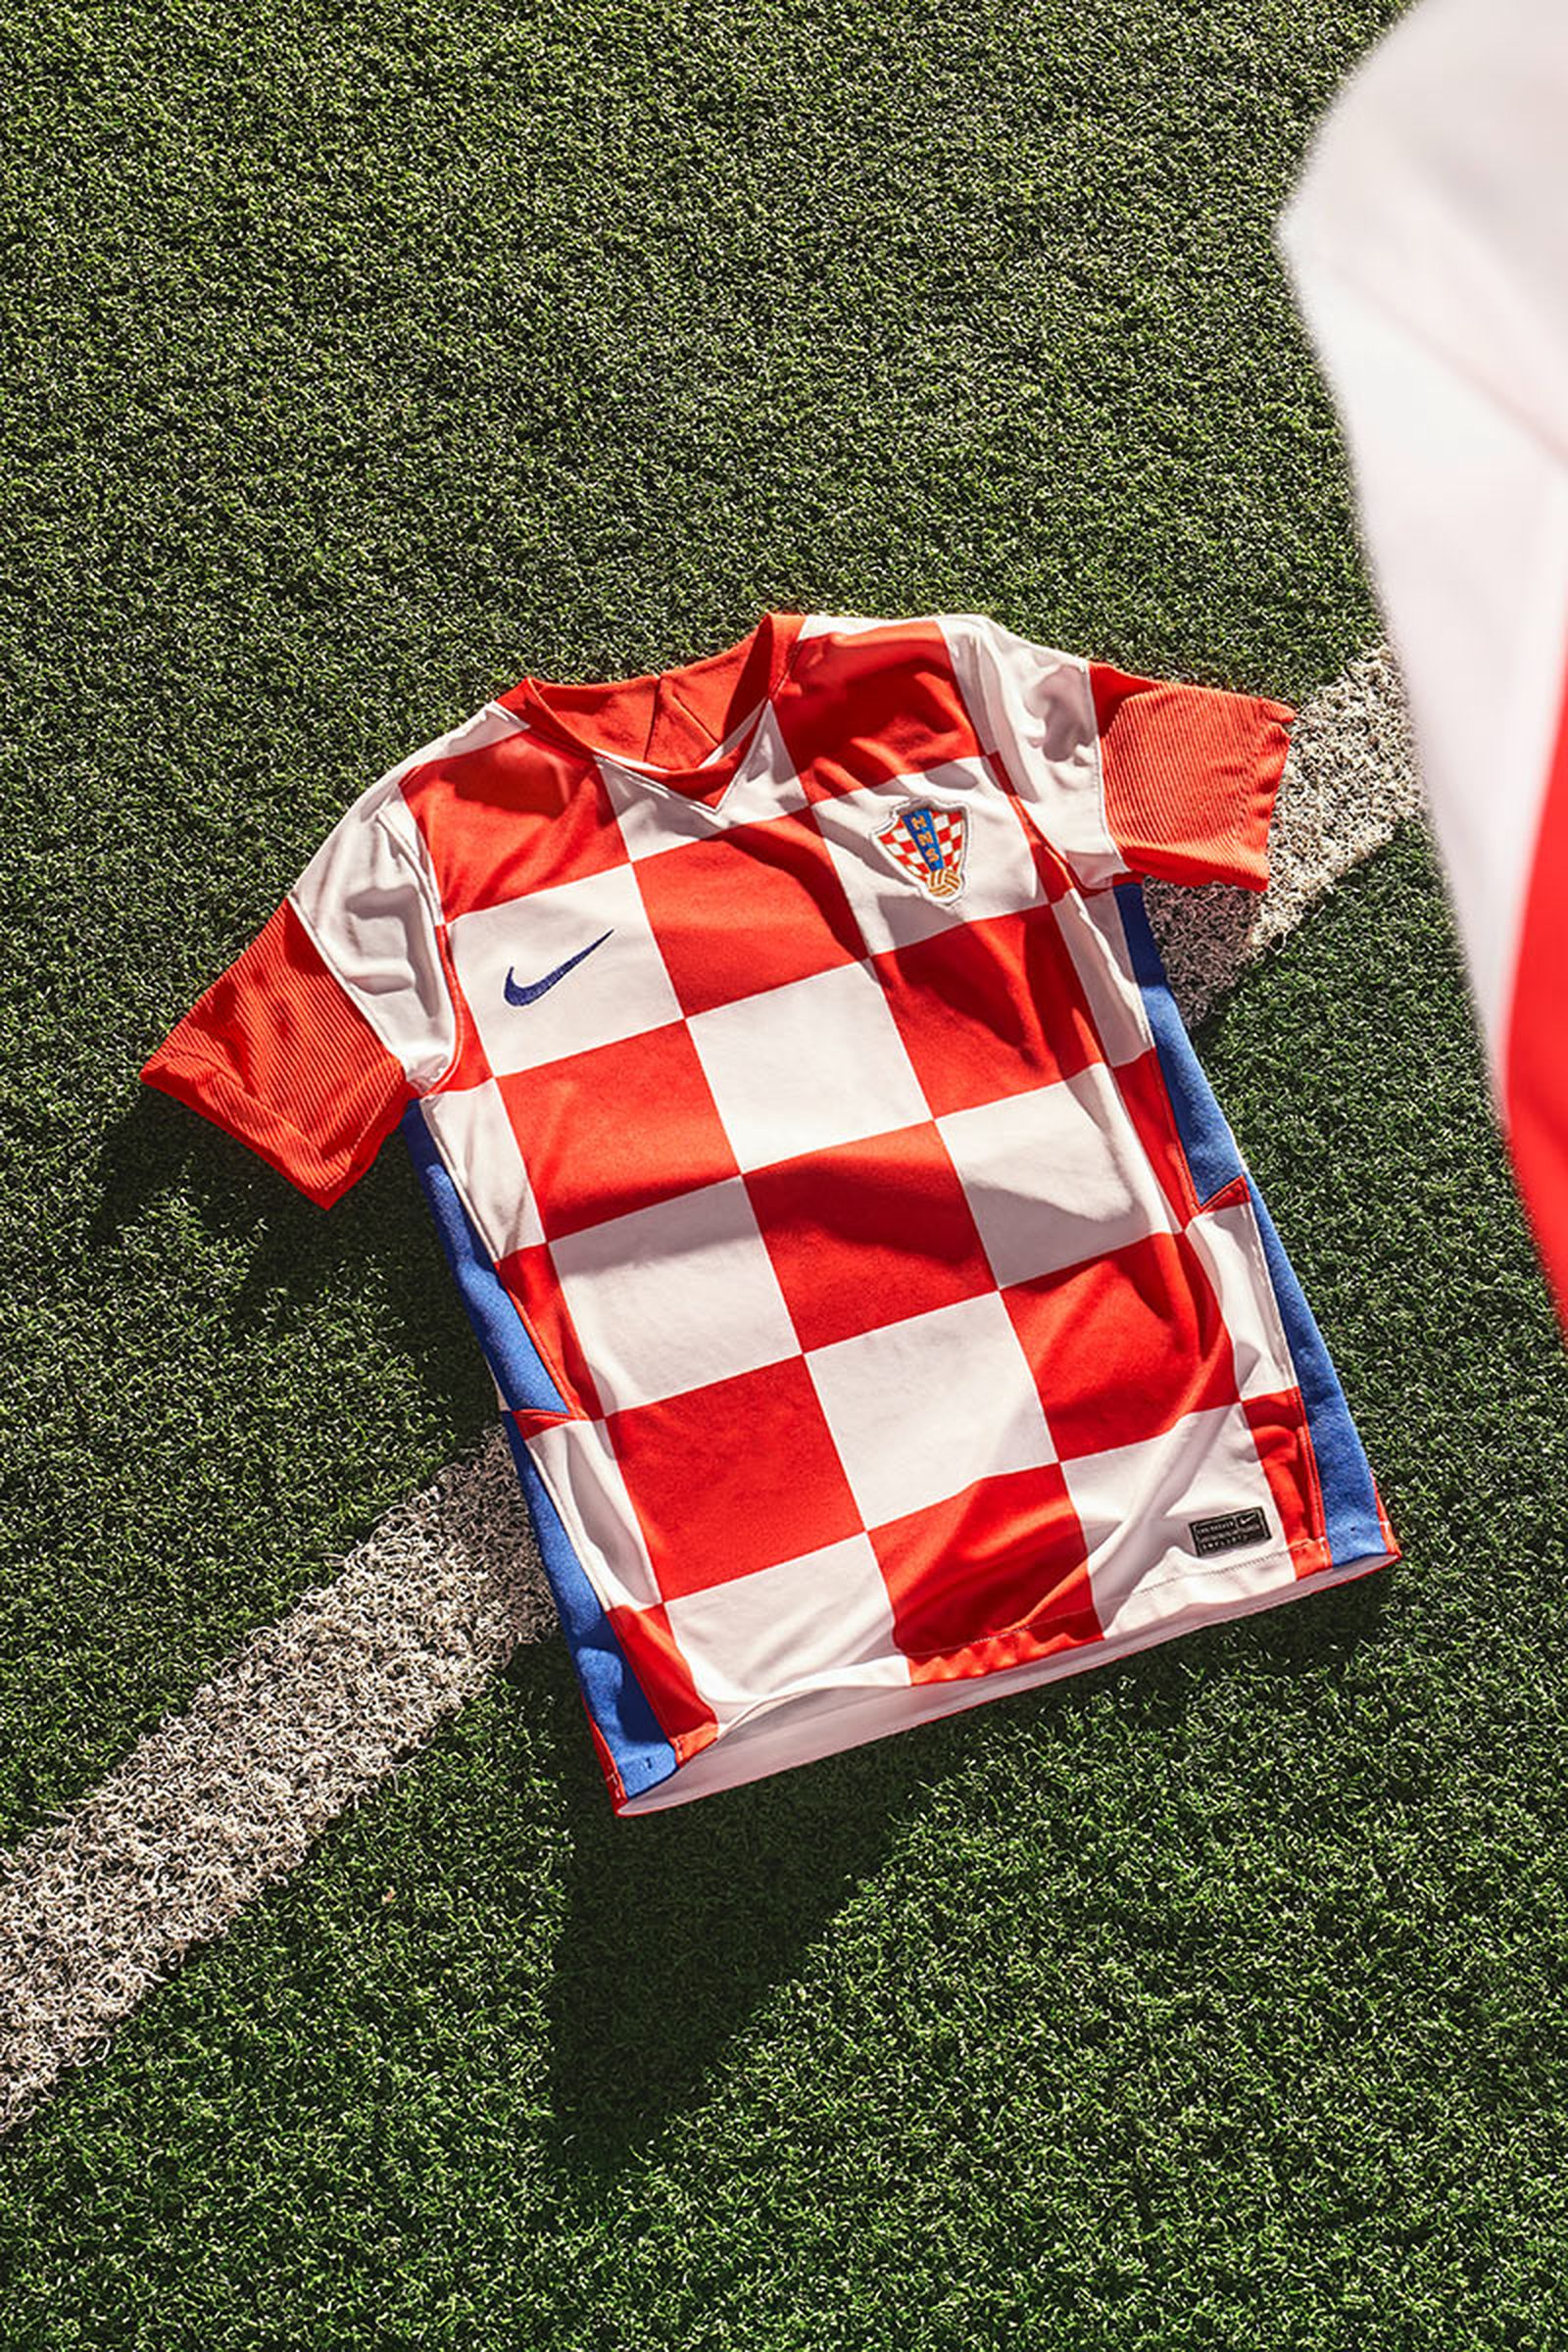 nike-national-team-kits-2020-ranking-10